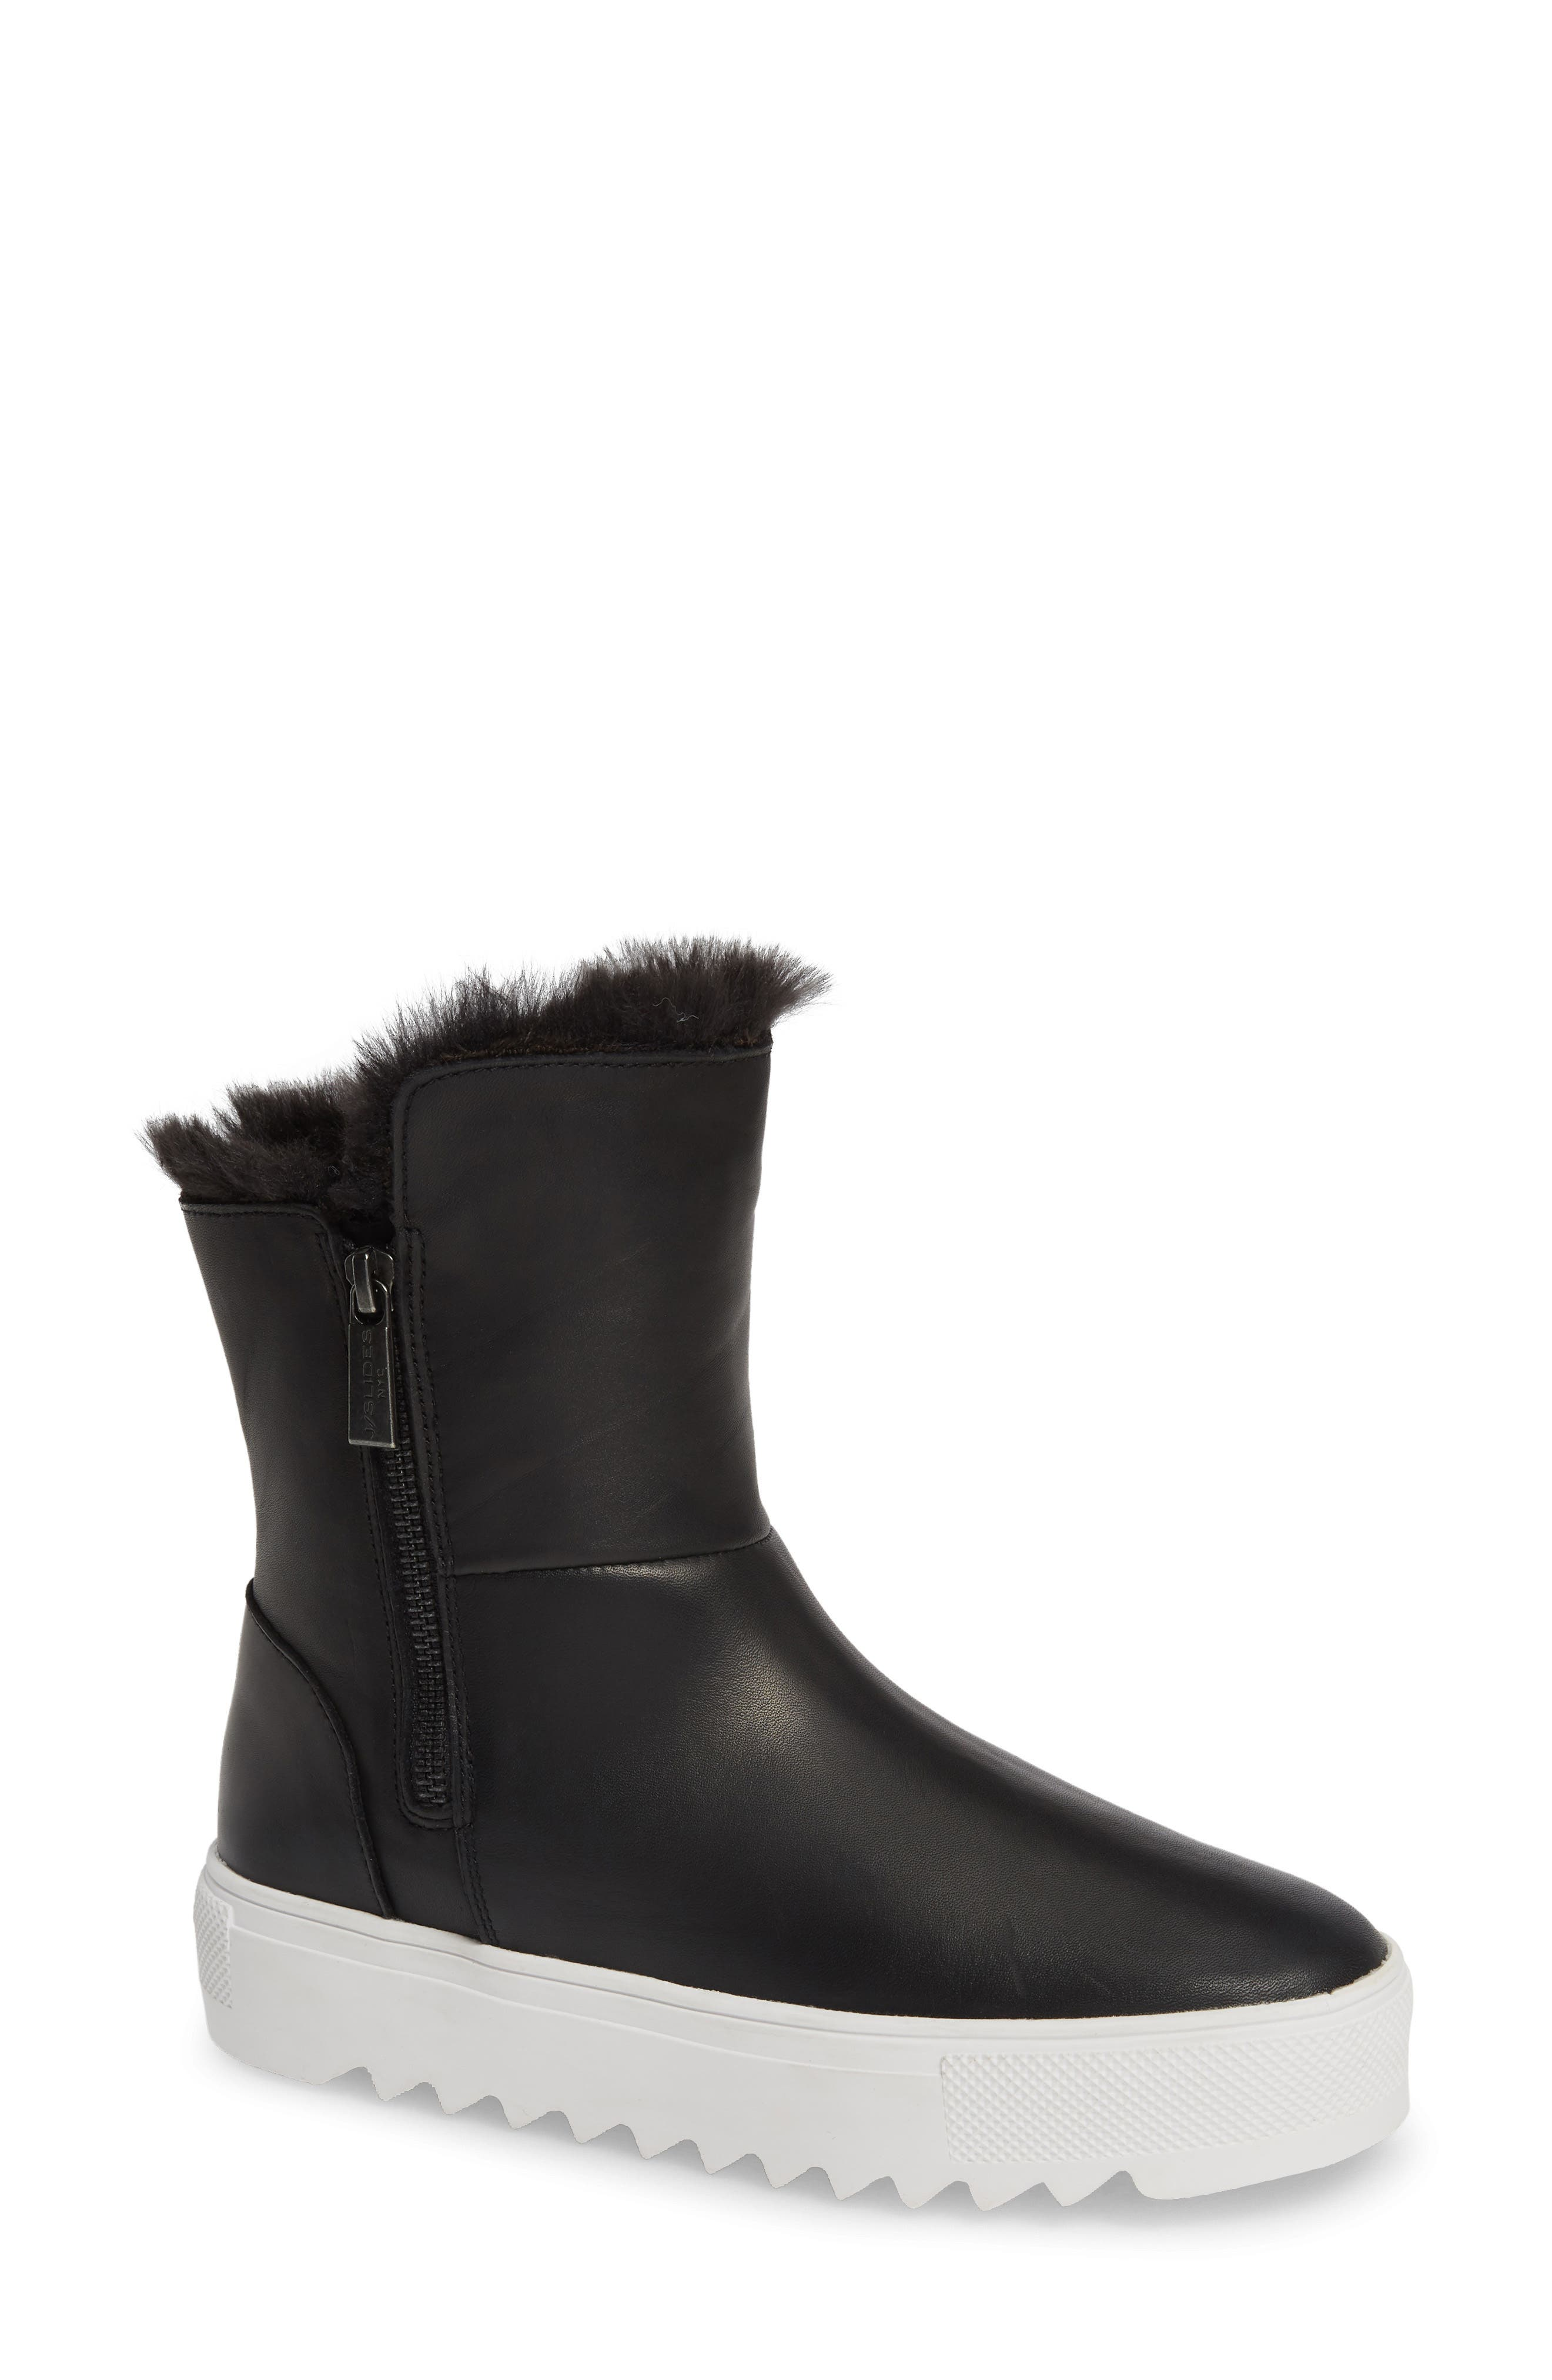 JSLIDES Selene Faux Fur Lined Waterproof Boot in Black Leather